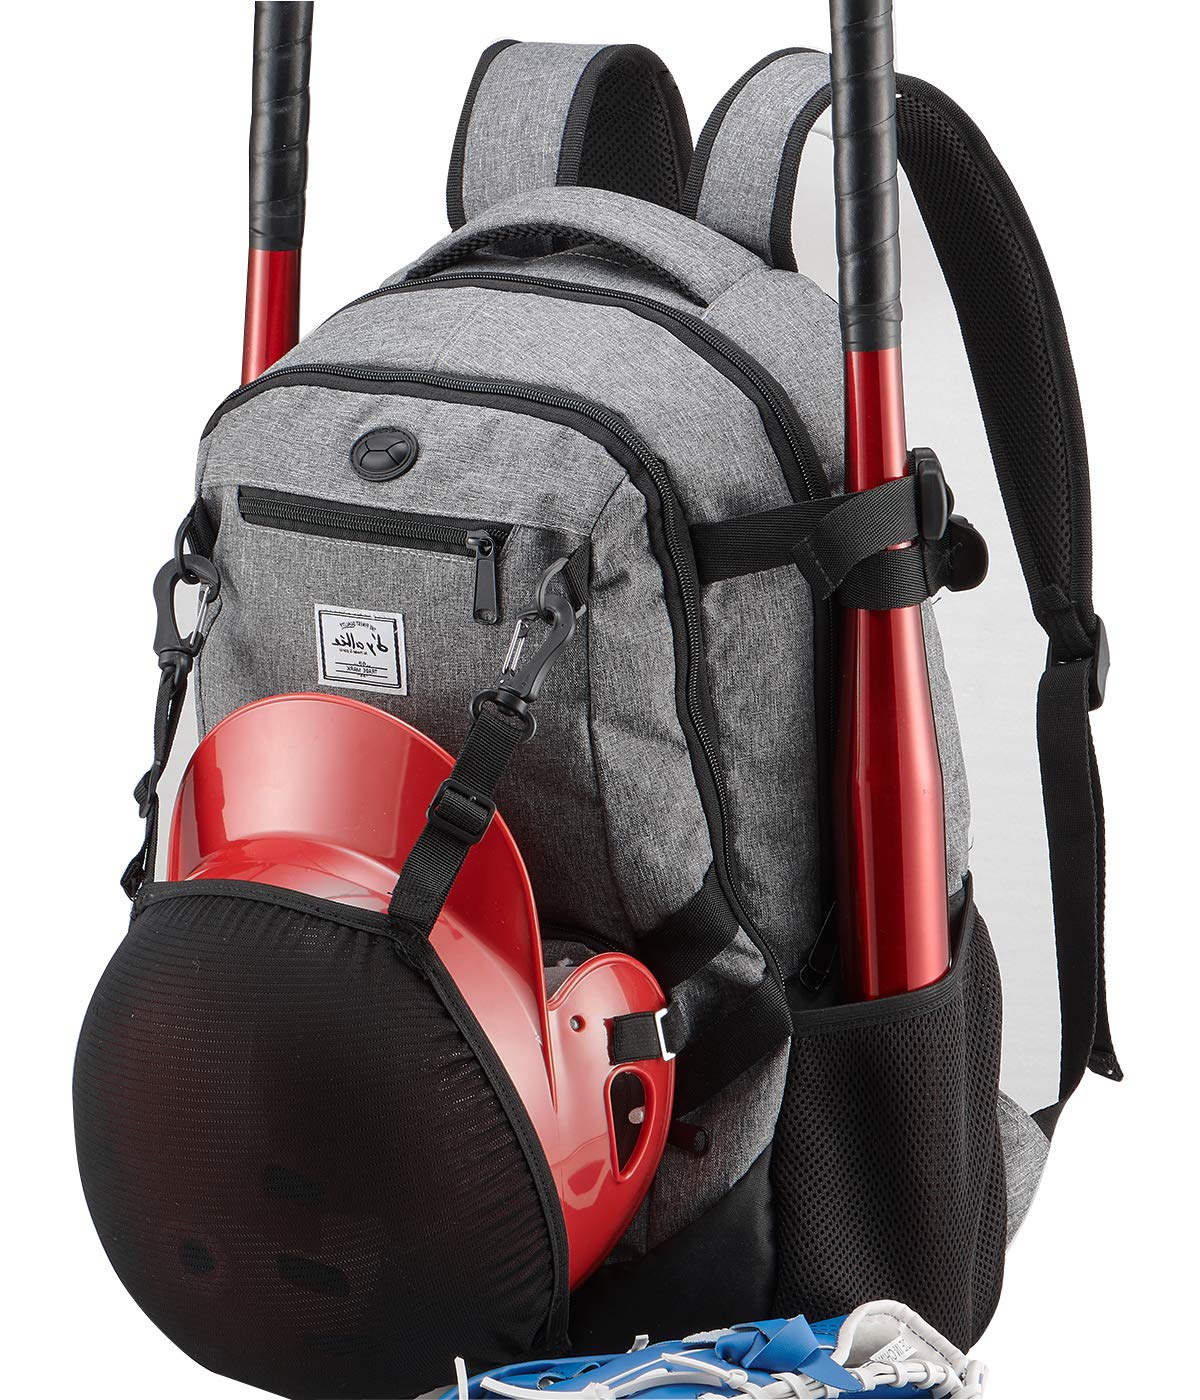 normal Baseball Bag - Basketball Backpack for Soccer Volleyball Football Softball Equipment & Gear for Youth and Adults with Shoes and Ball Compartment